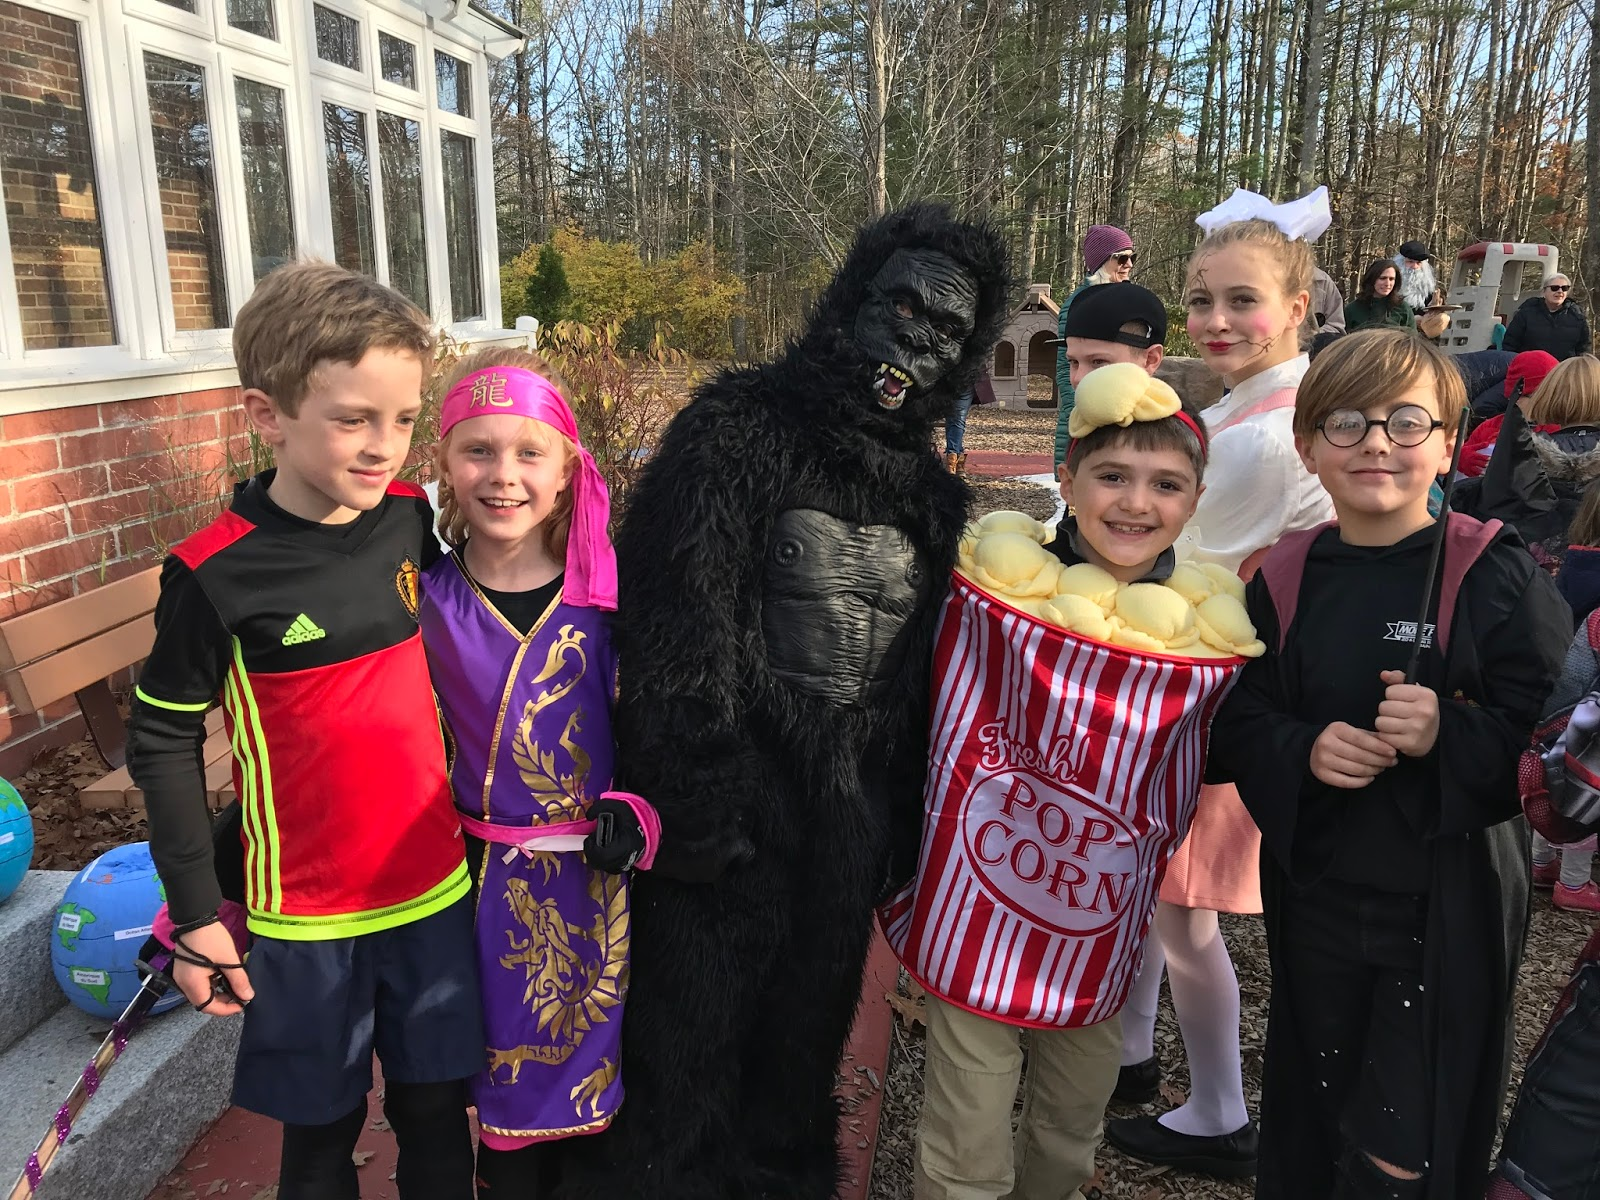 halloween parade in november - l'ecole francaise du maine